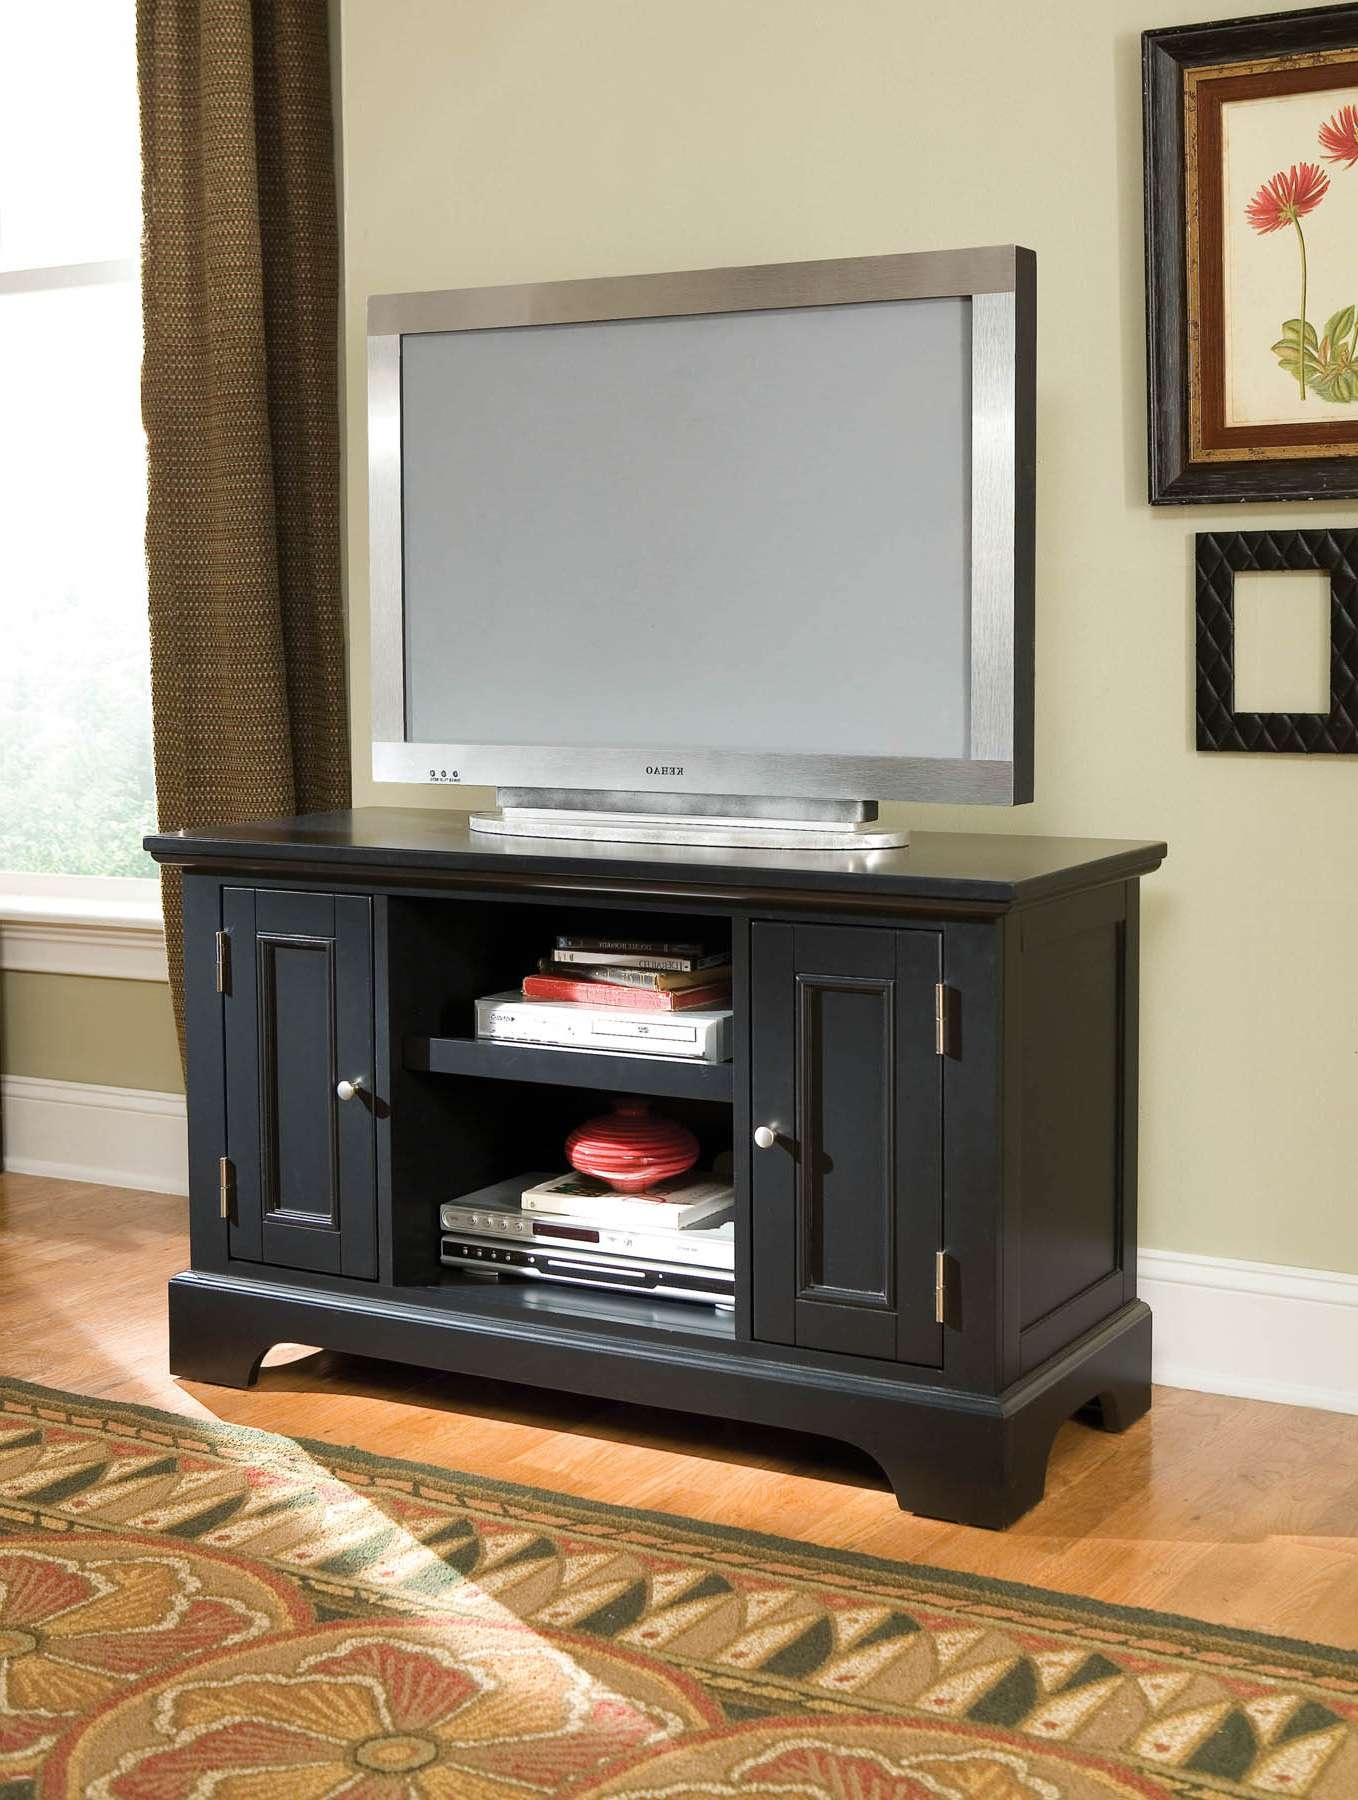 Home Styles Bedford Tv Stand 5531 09 Pertaining To Bedford Tv Stands (View 5 of 15)